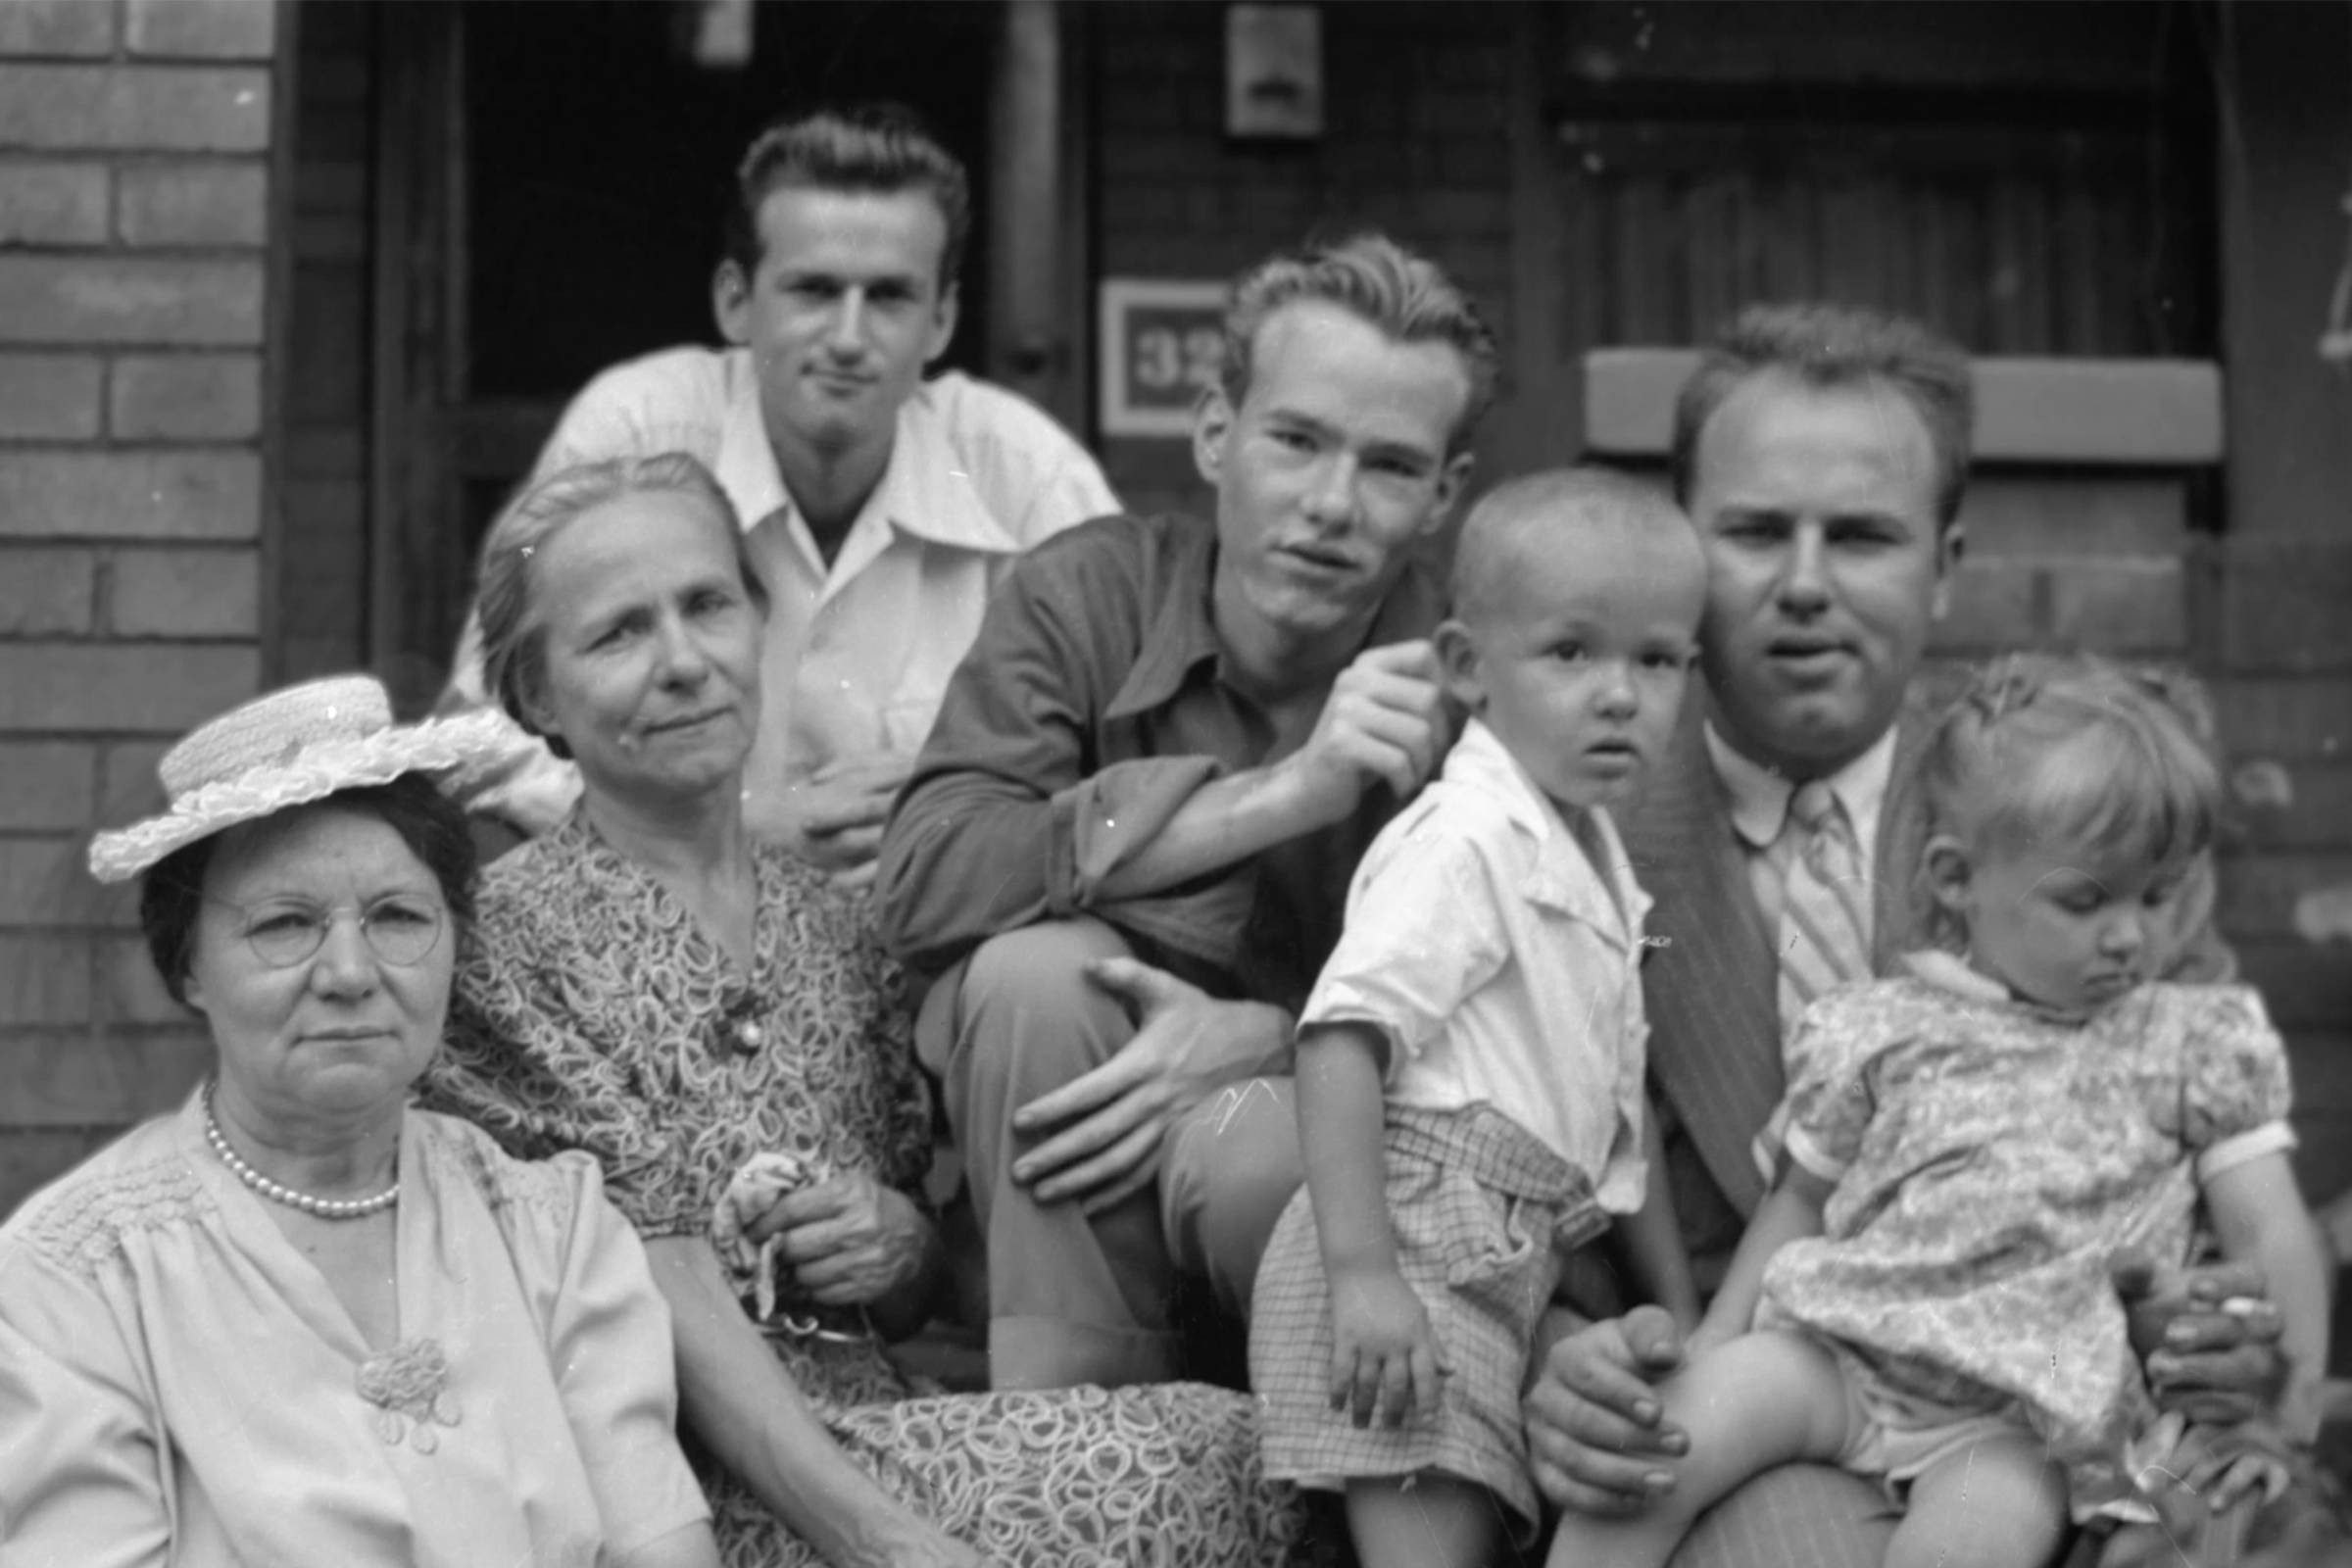 Teenage Warhol (center) surrounded by his family, 1940s